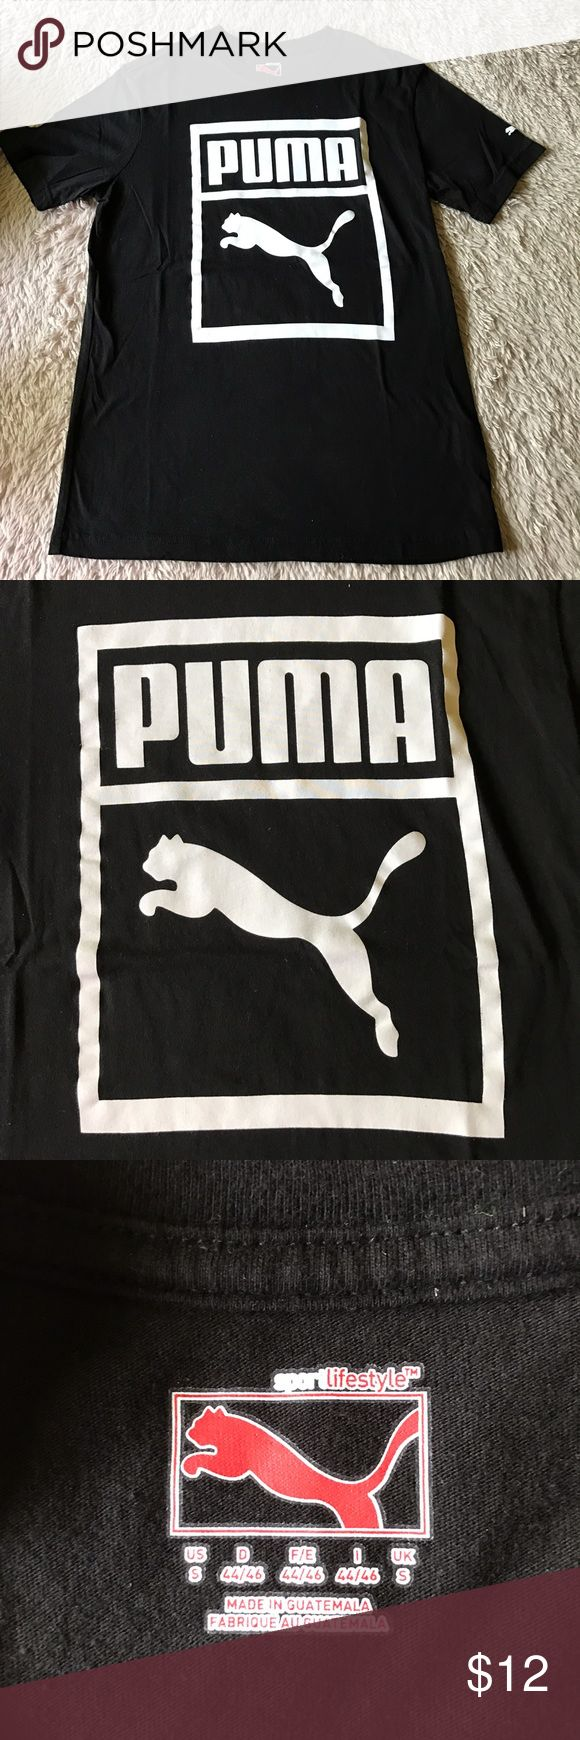 Men's Puma t-shirt Men's Puma t-shirt in excellent used condition. Size small. Black shirt with white Puma logo Puma Shirts Tees - Short Sleeve